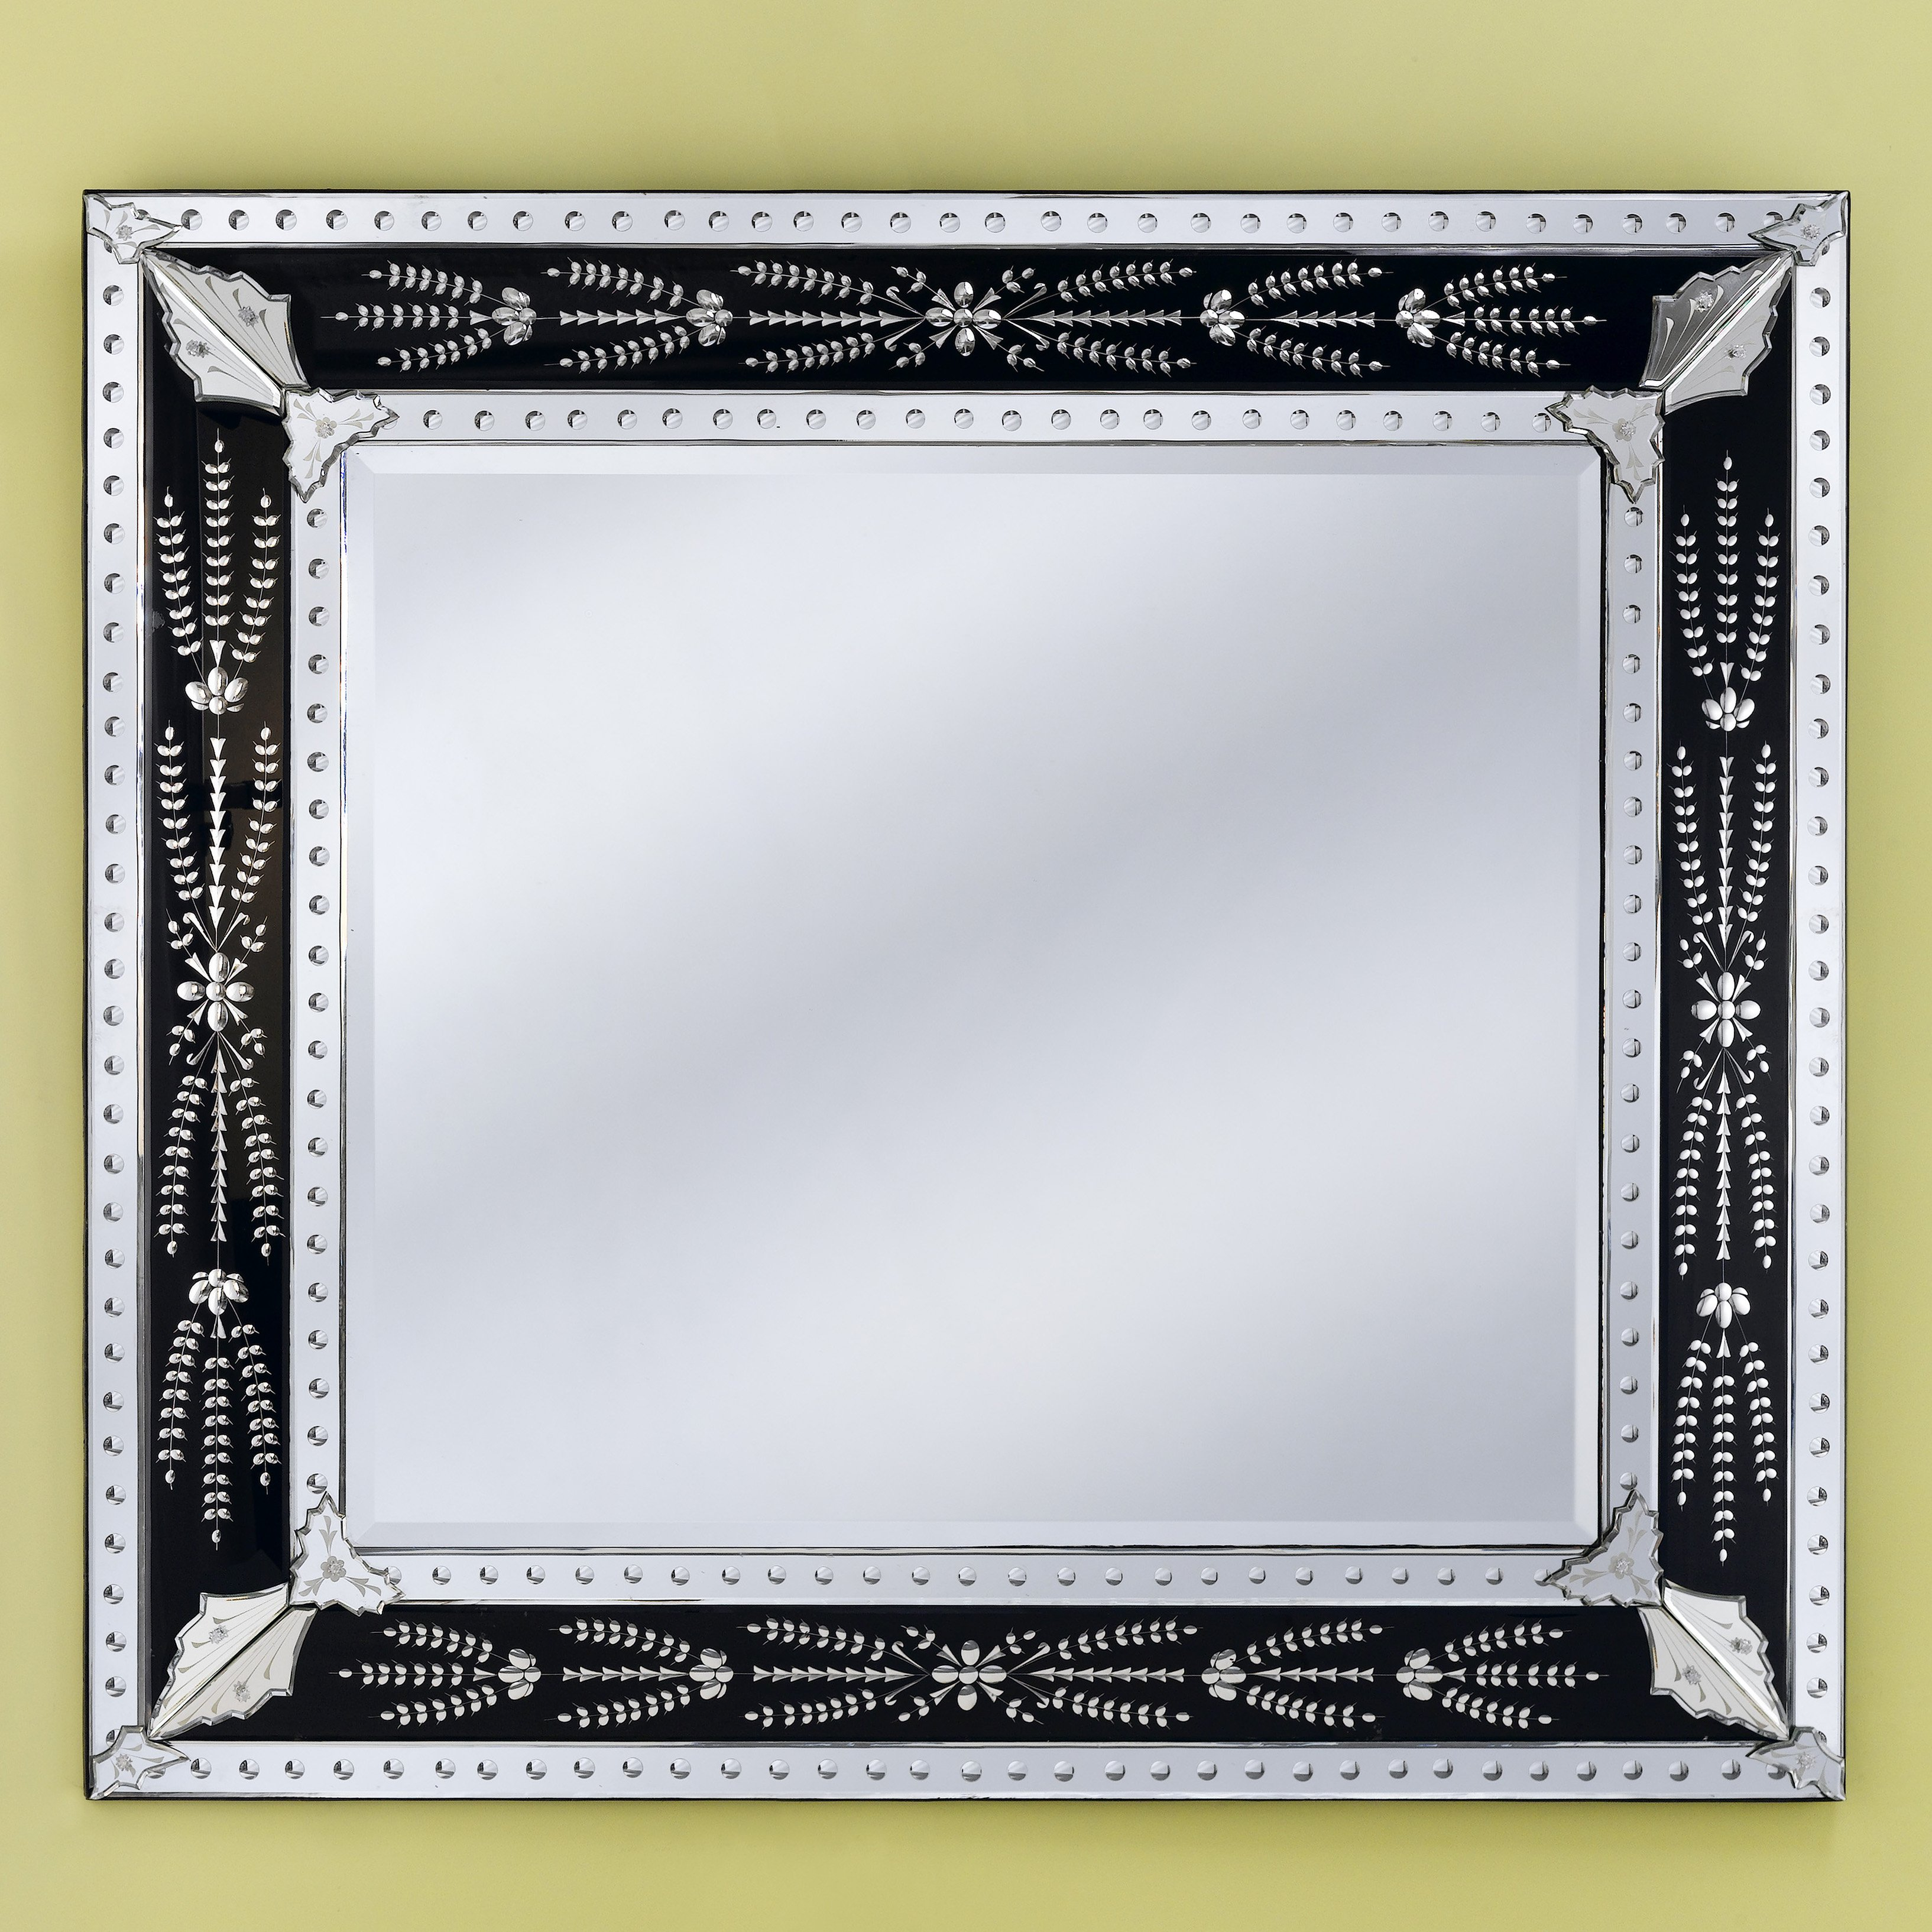 Eleina Black Venetian Wall Mirror - 55W x 50H in.